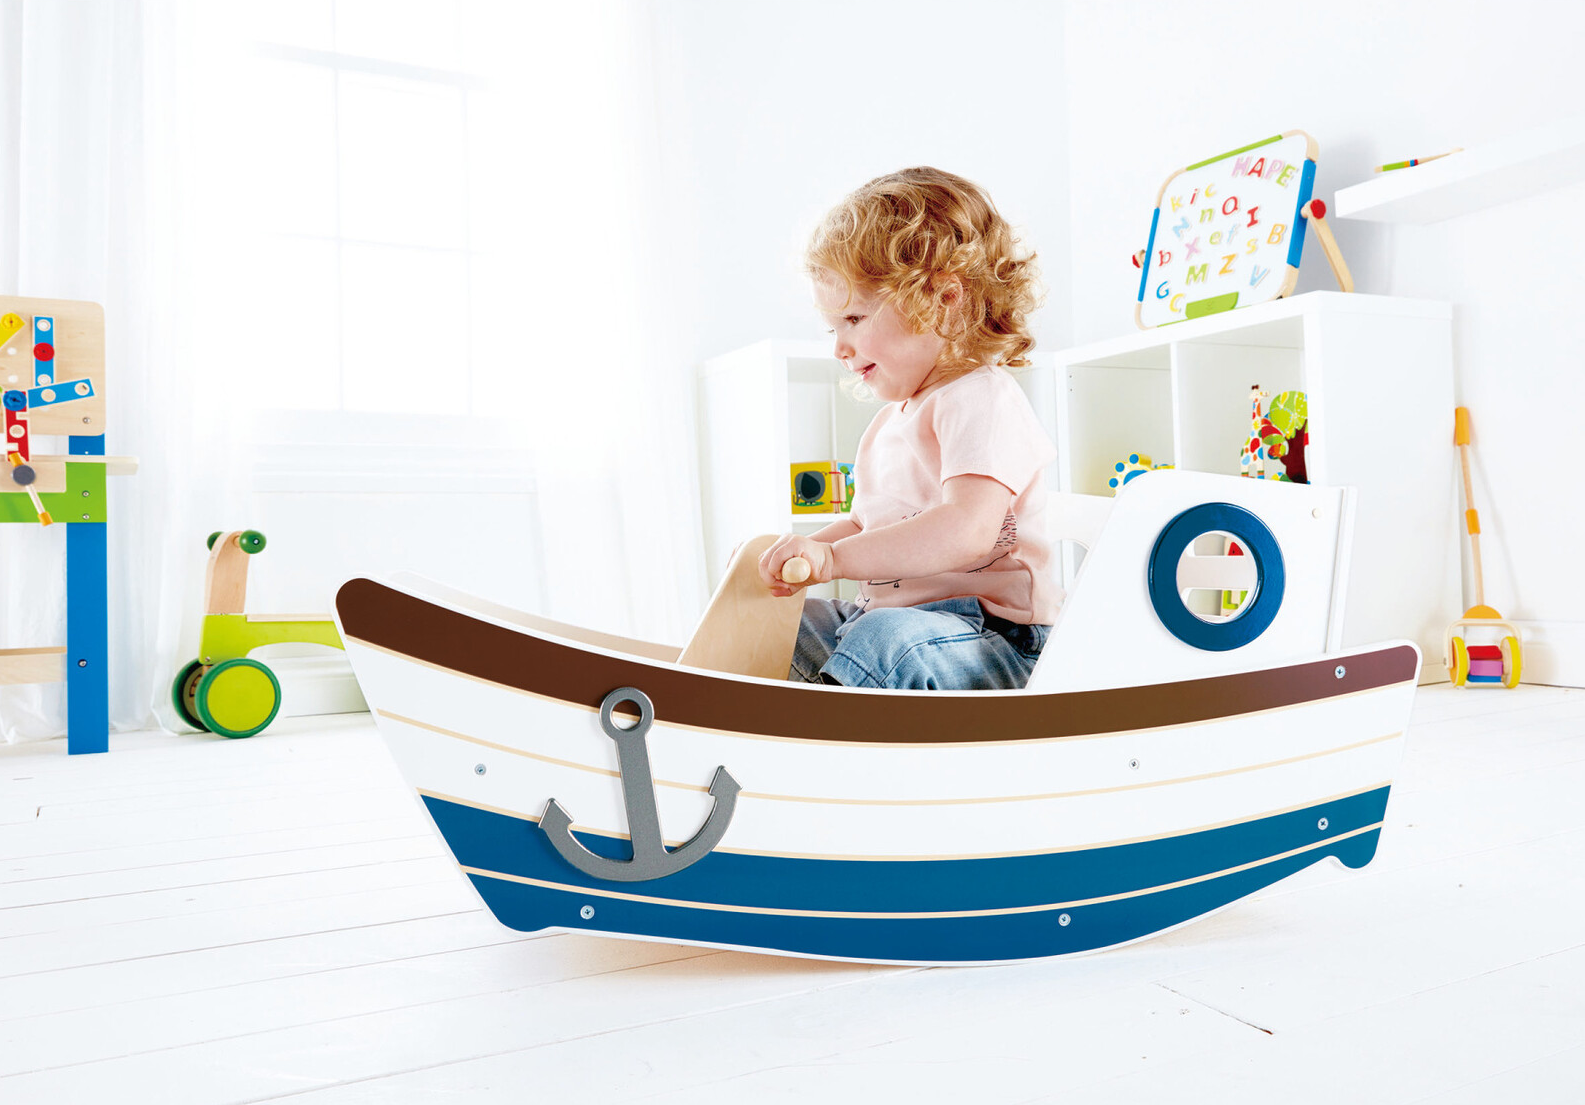 a child in a boat toy that rocks back and forth